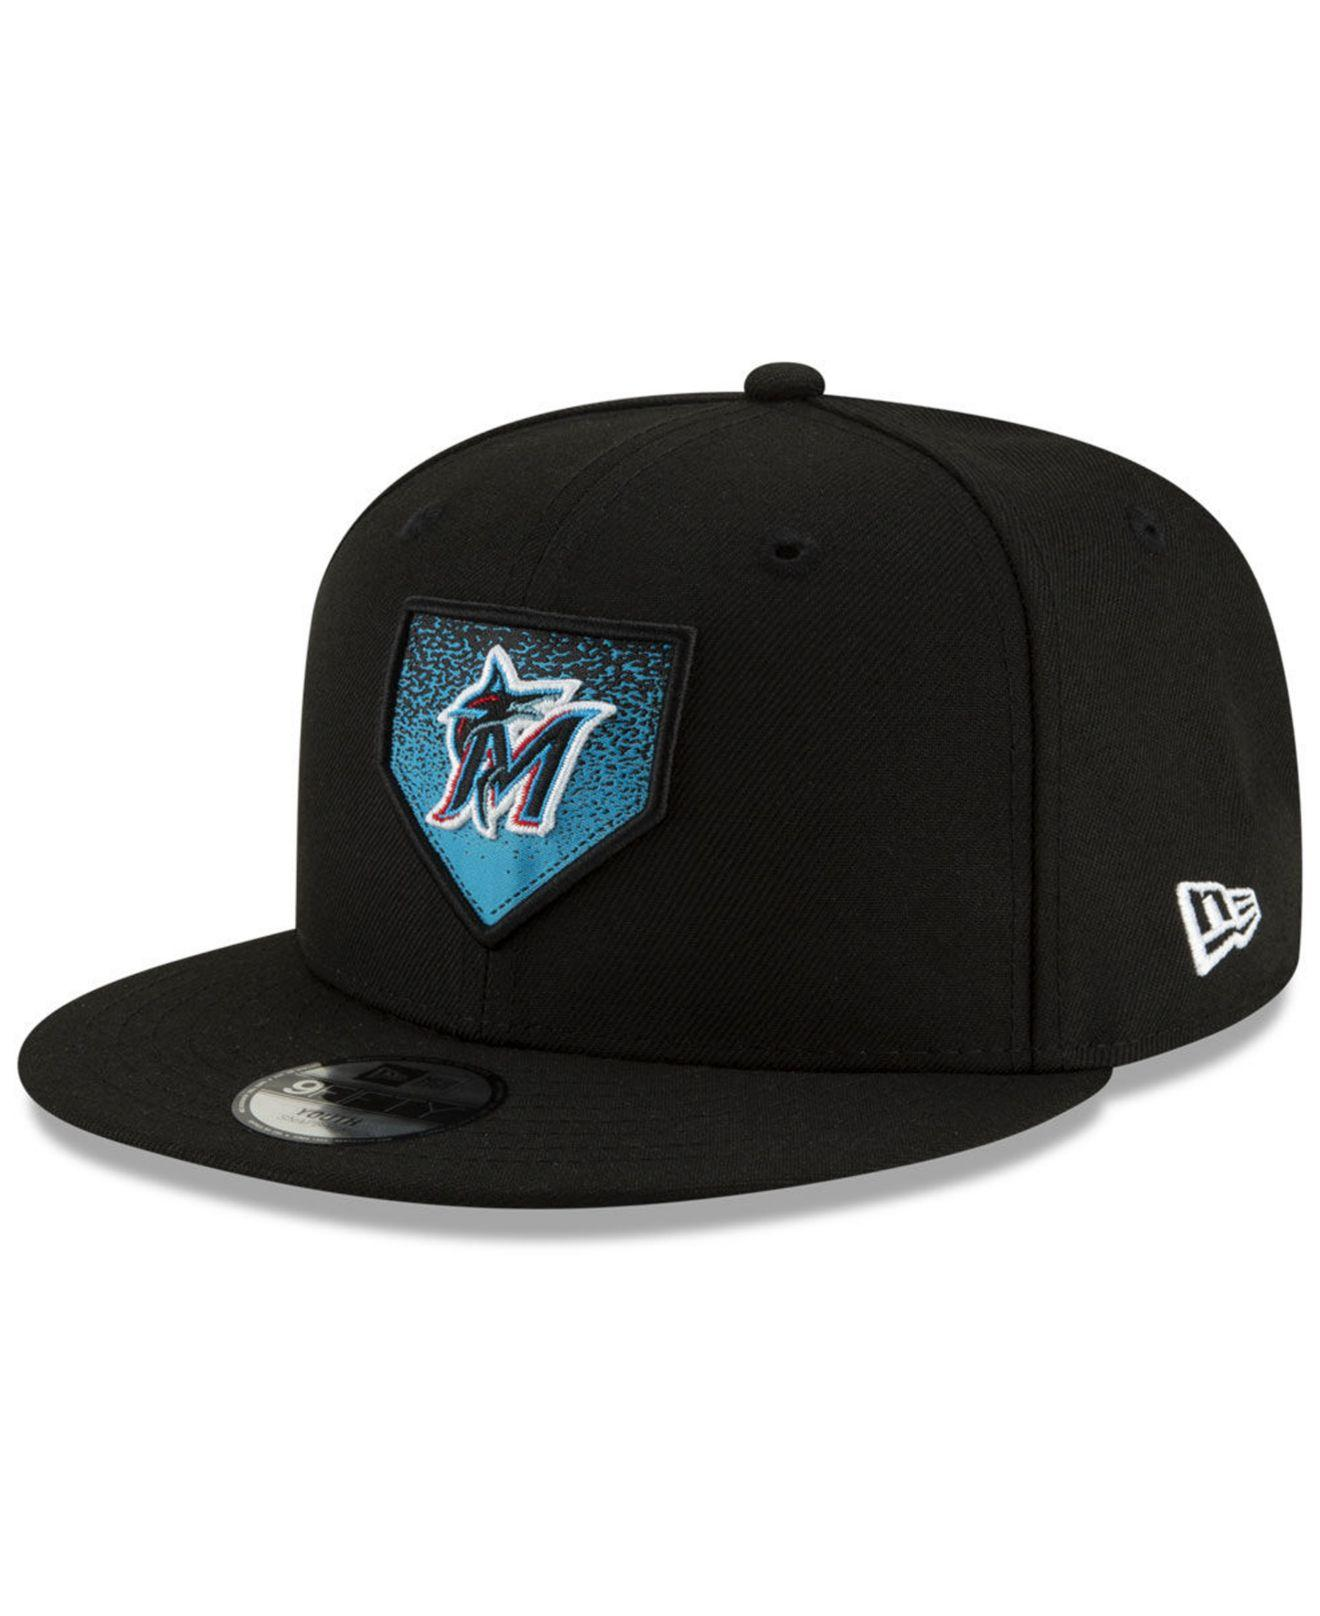 lowest price 4a391 36616 KTZ. Men s Black Miami Marlins Lil Plate 9fifty Cap